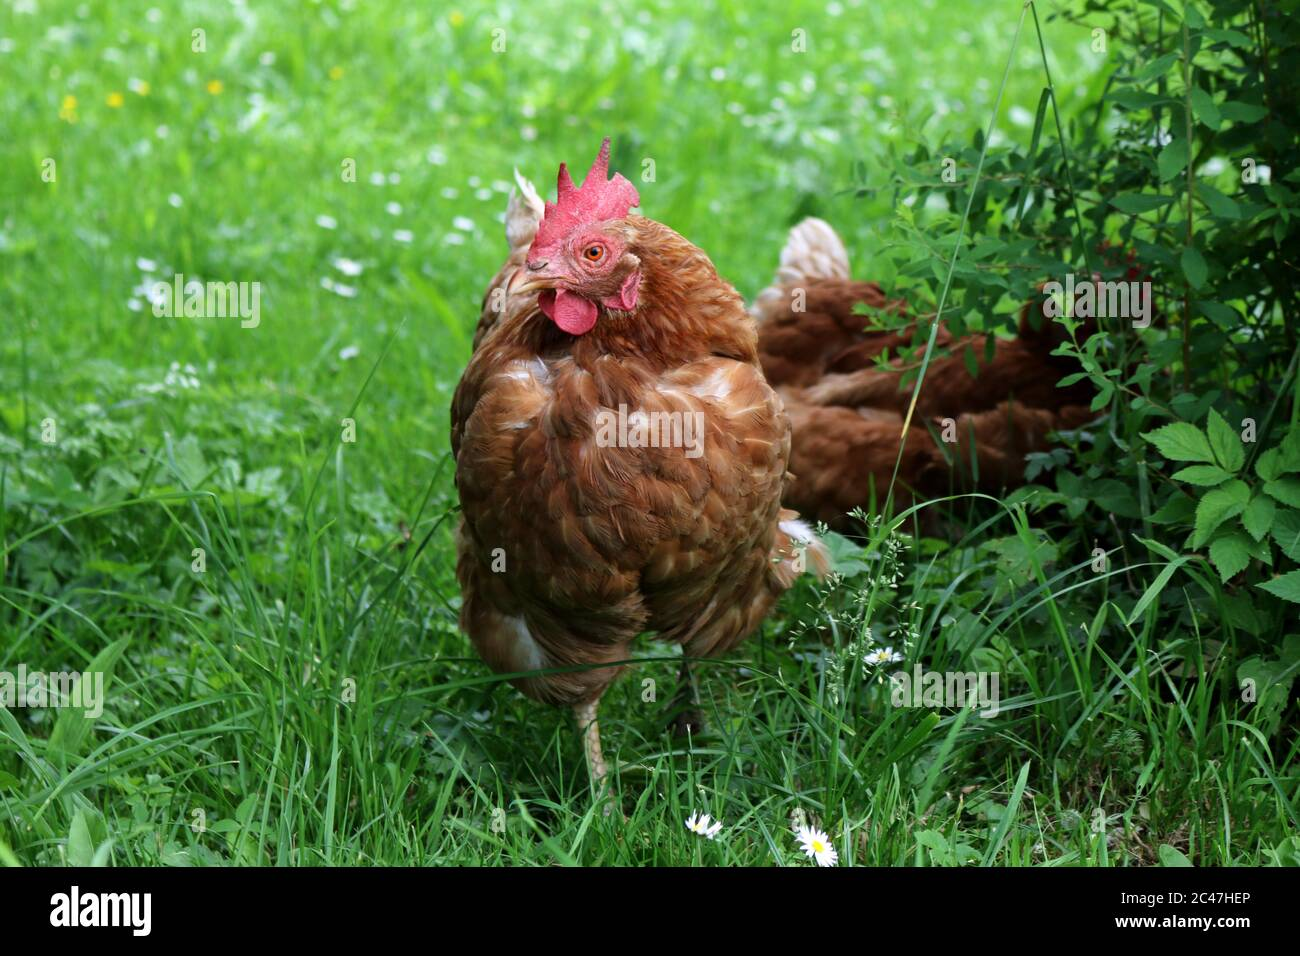 Poultry looking for food in a meadow Stock Photo